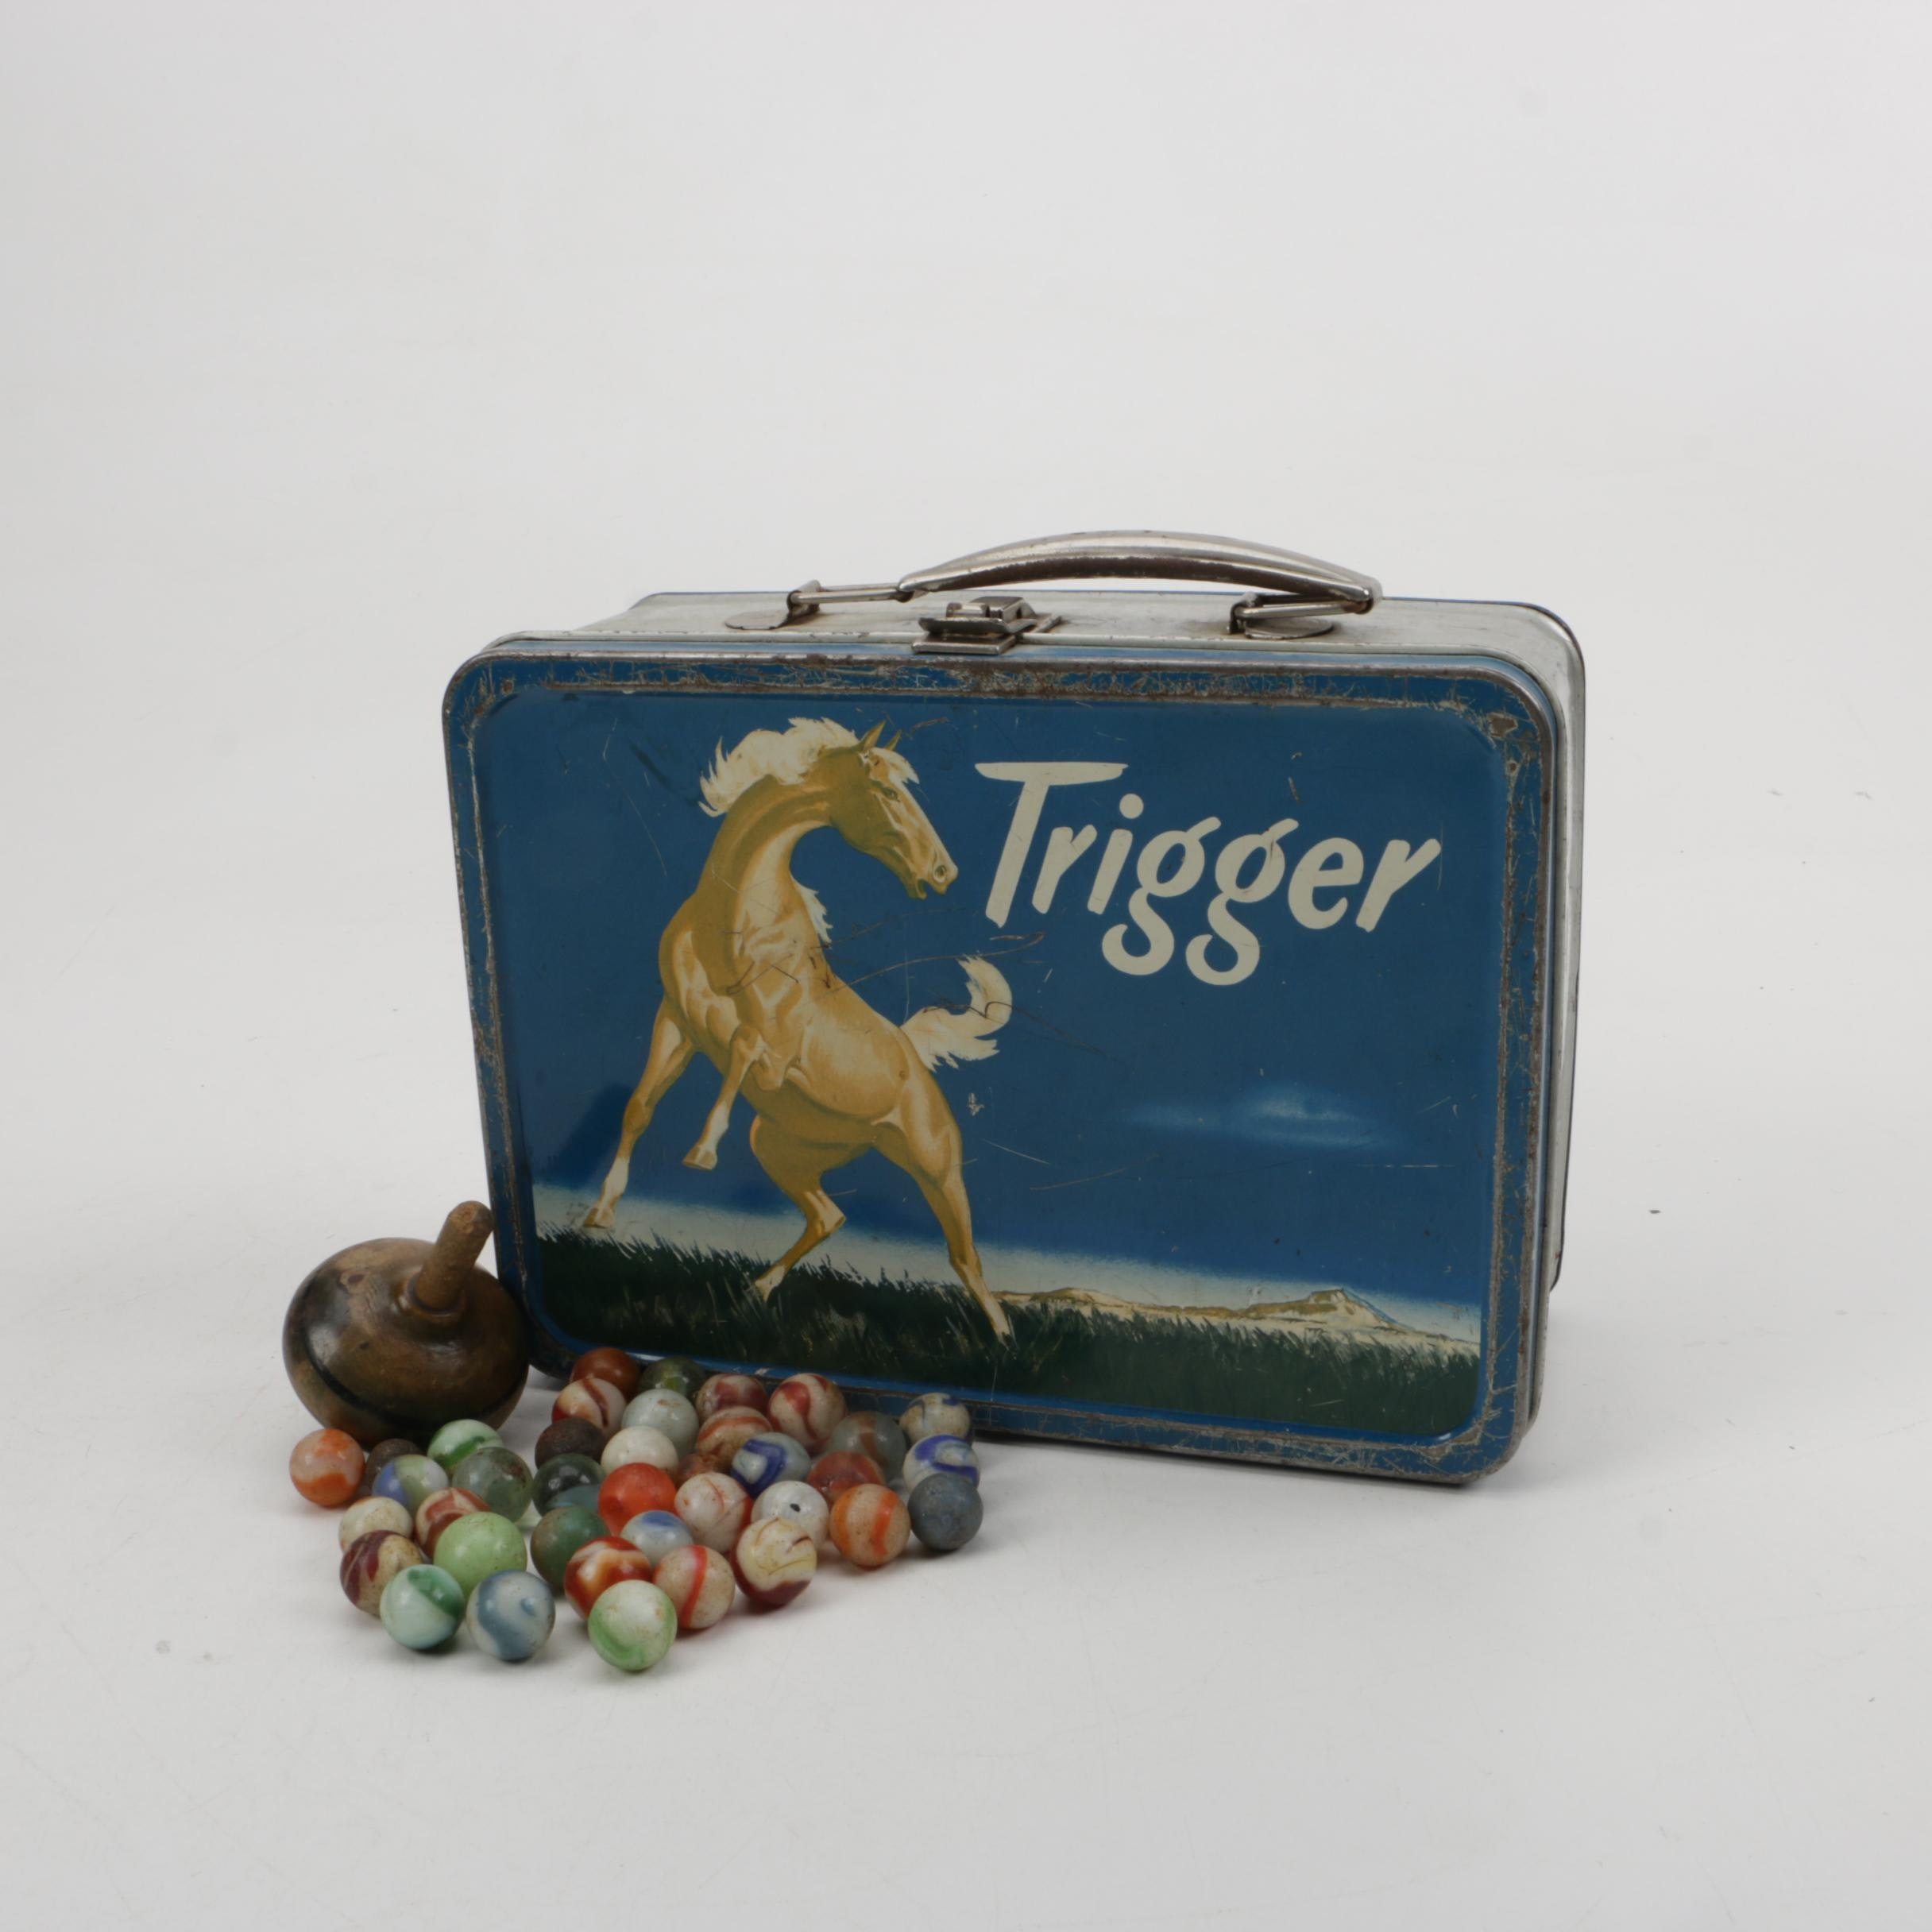 Trigger Lunch Box with Marbles and a Top